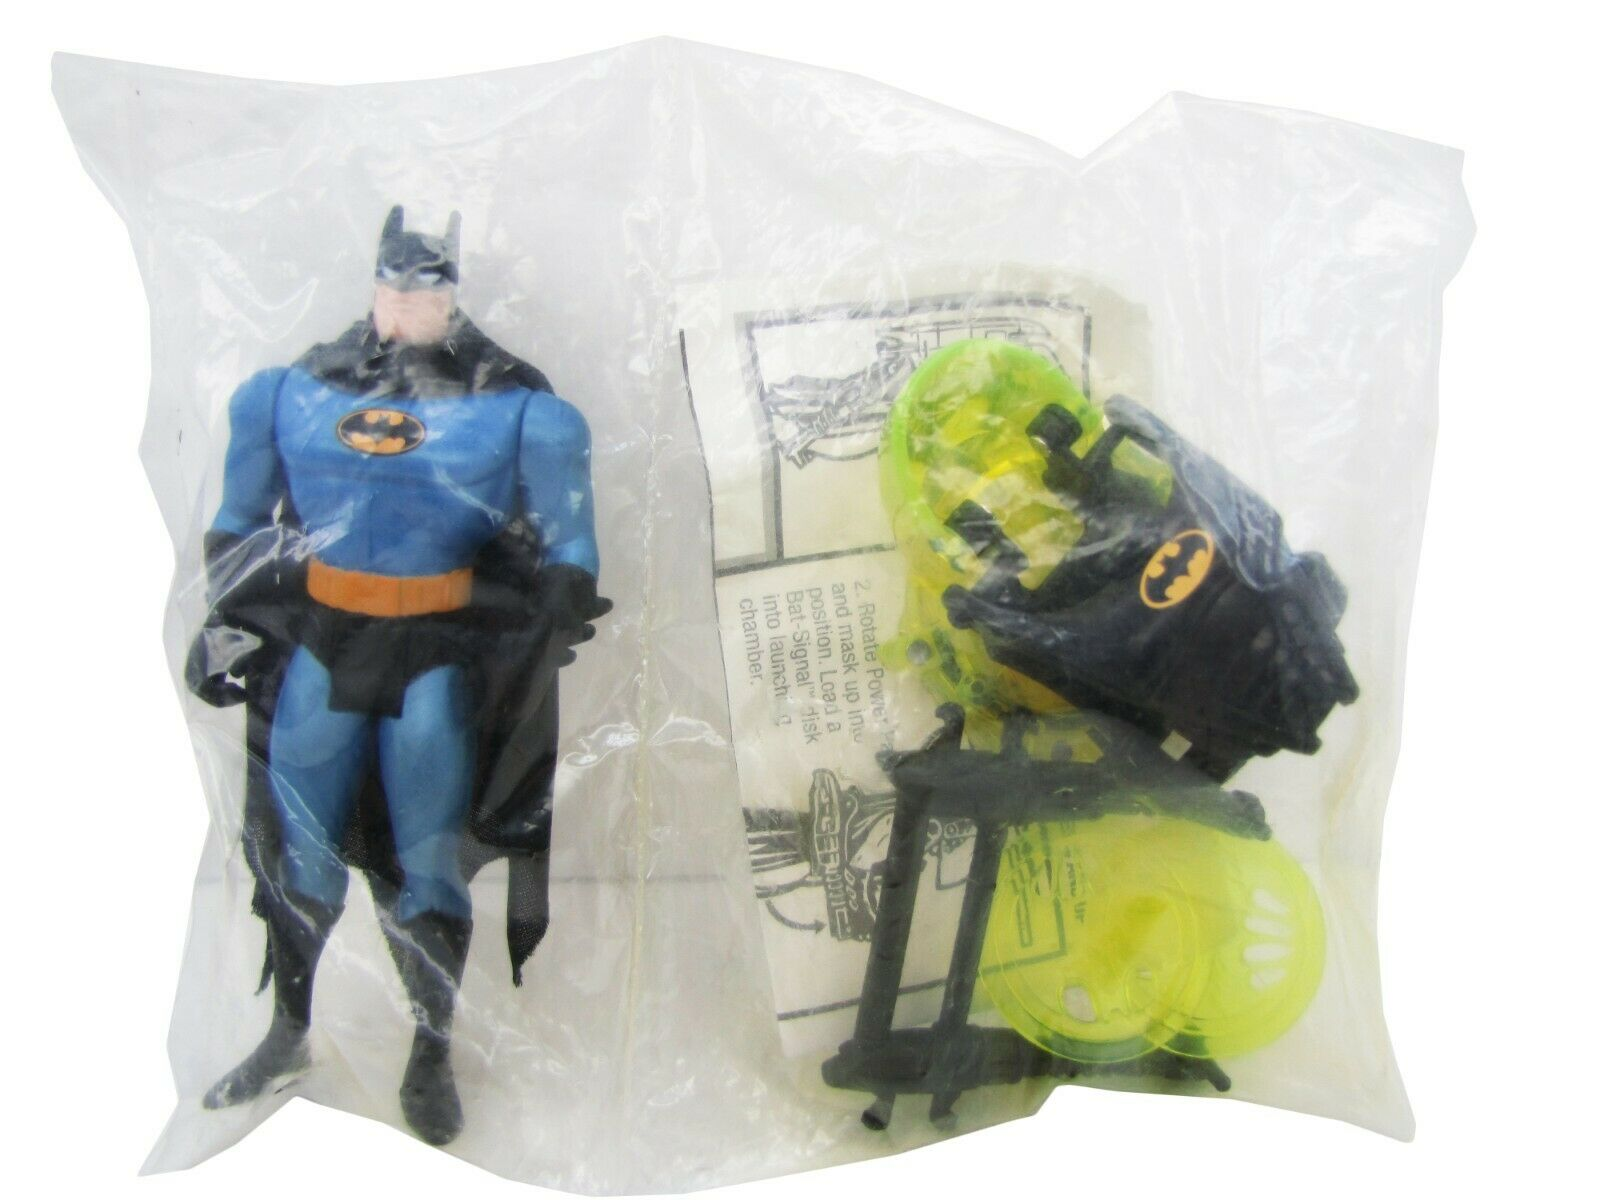 1995 Batman The Animated Series MAIL IN BATTLE HELMET BATMAN Mint Sealed